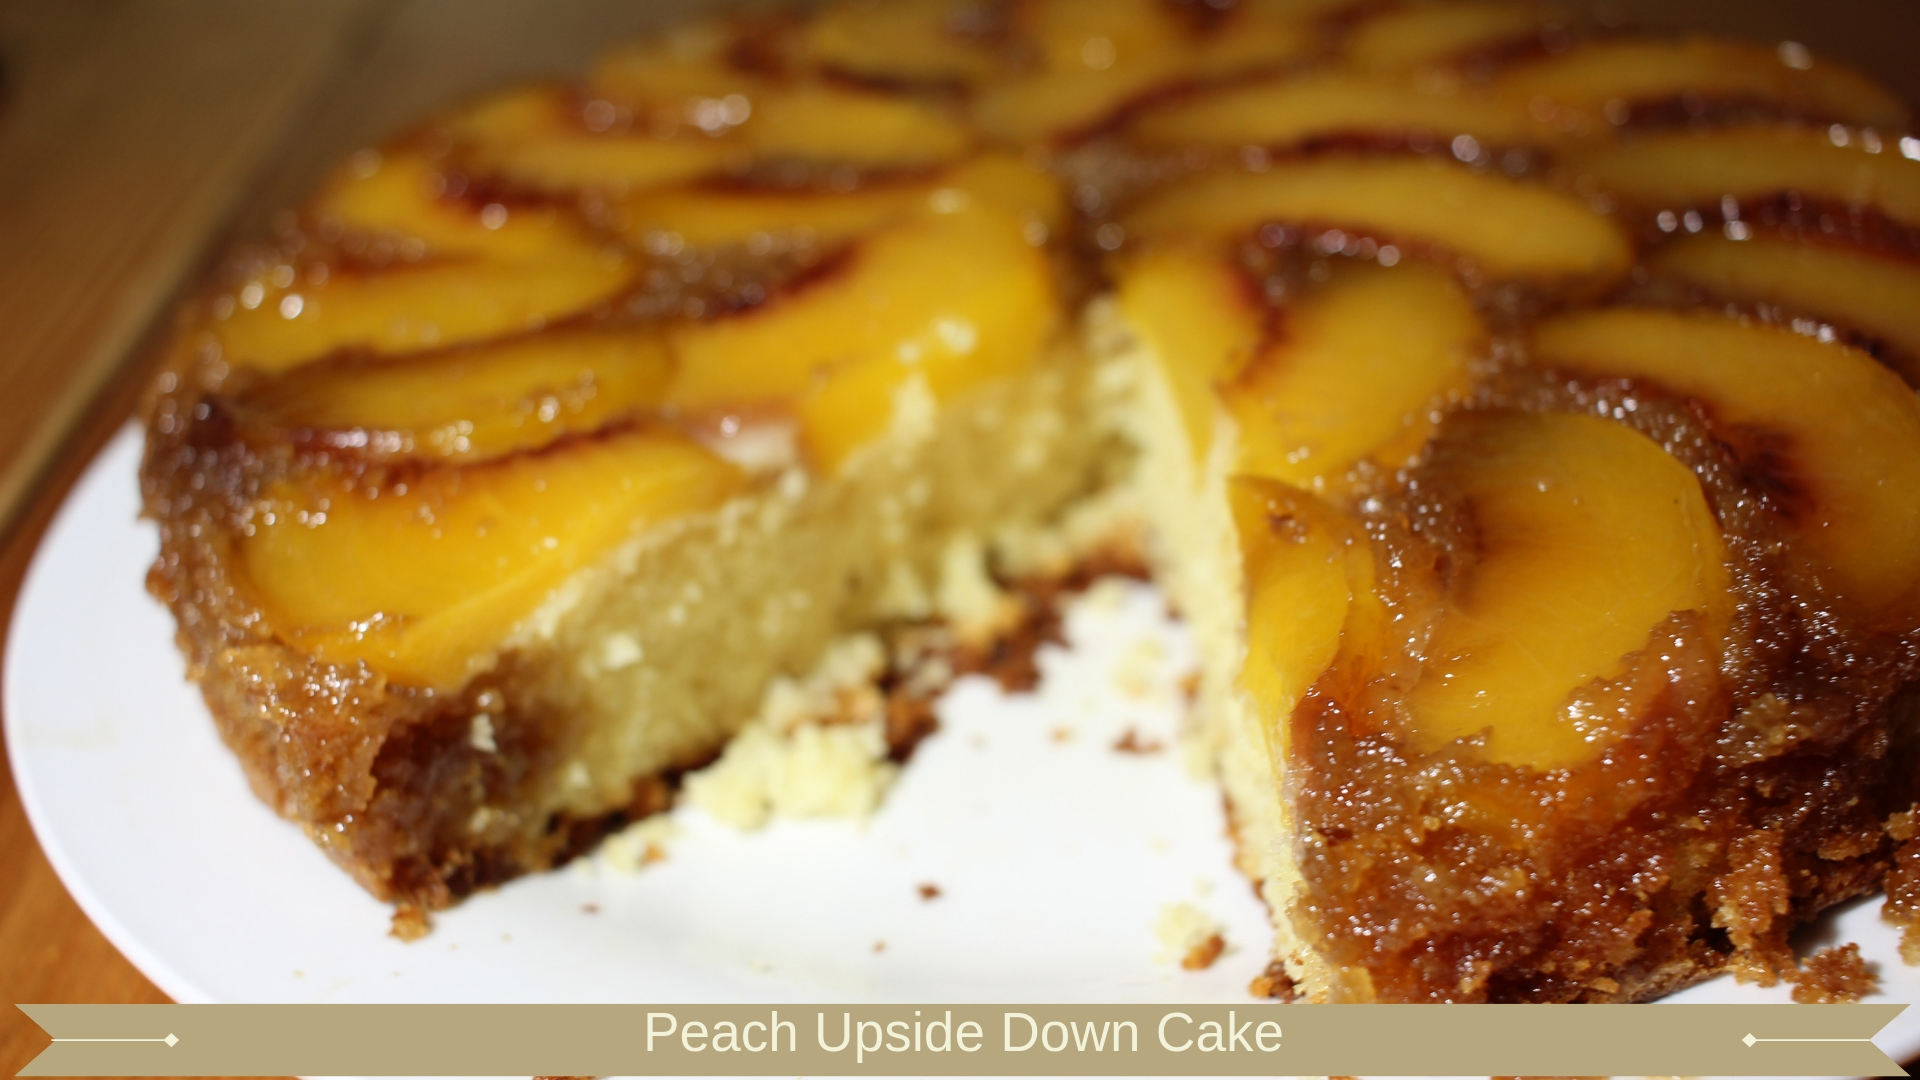 Peach Upside Down Cake - Meadow Brown Bakery